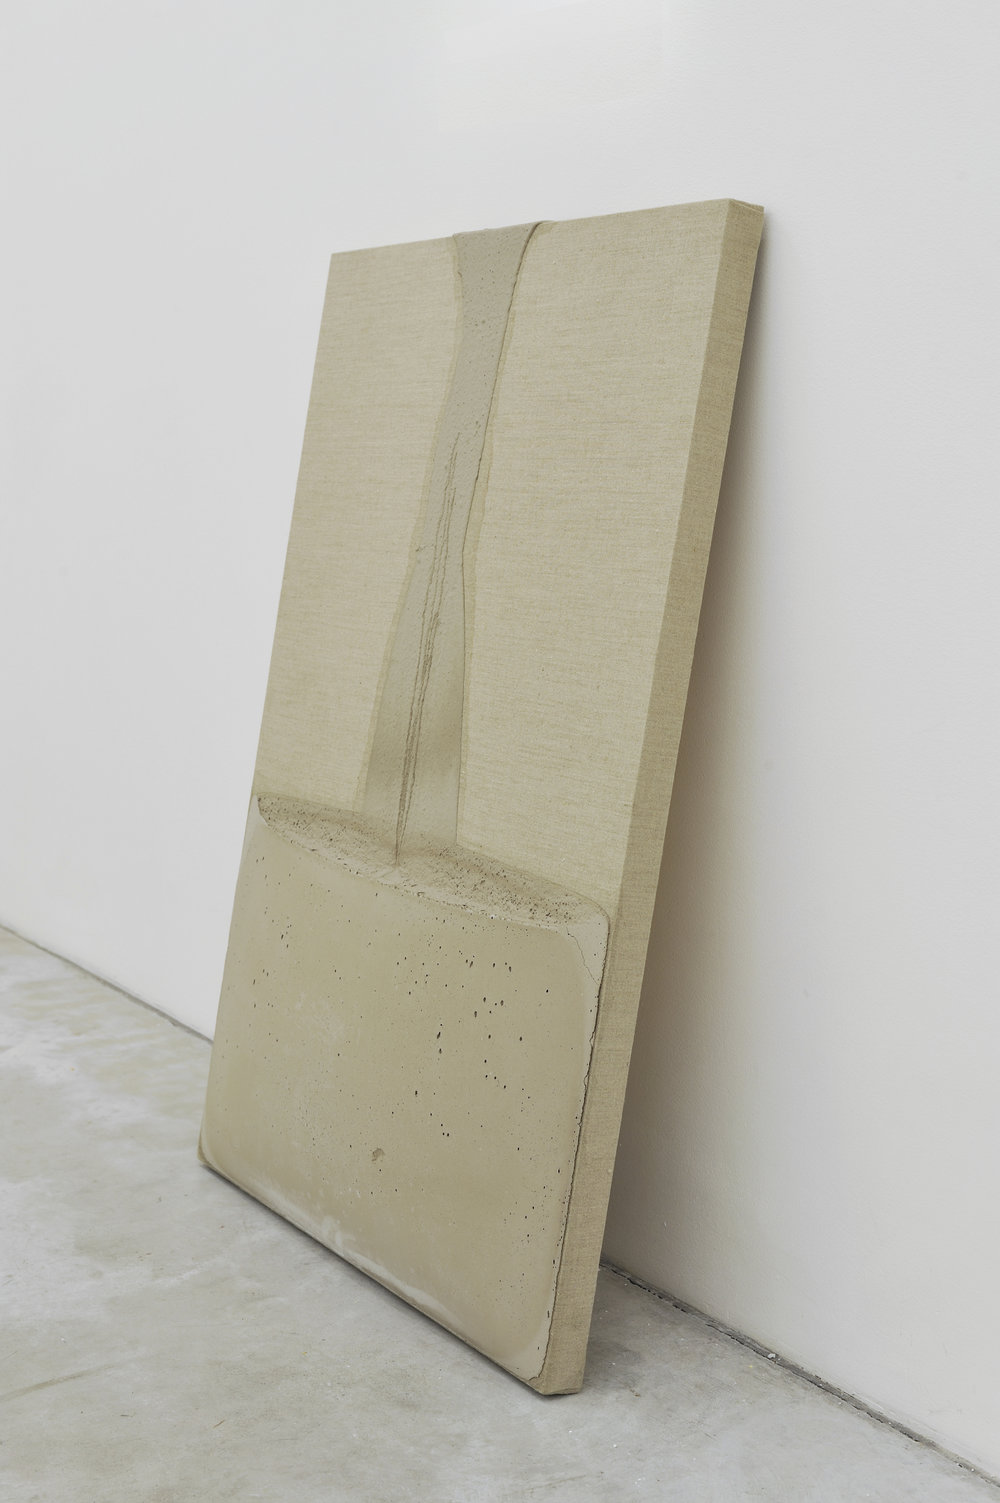 Decant (from Floor) #2, 2011 concrete on canvas 102,2 x 71 x 6,3 cm - 40 1/4 x 28 x 2 1/2 inches